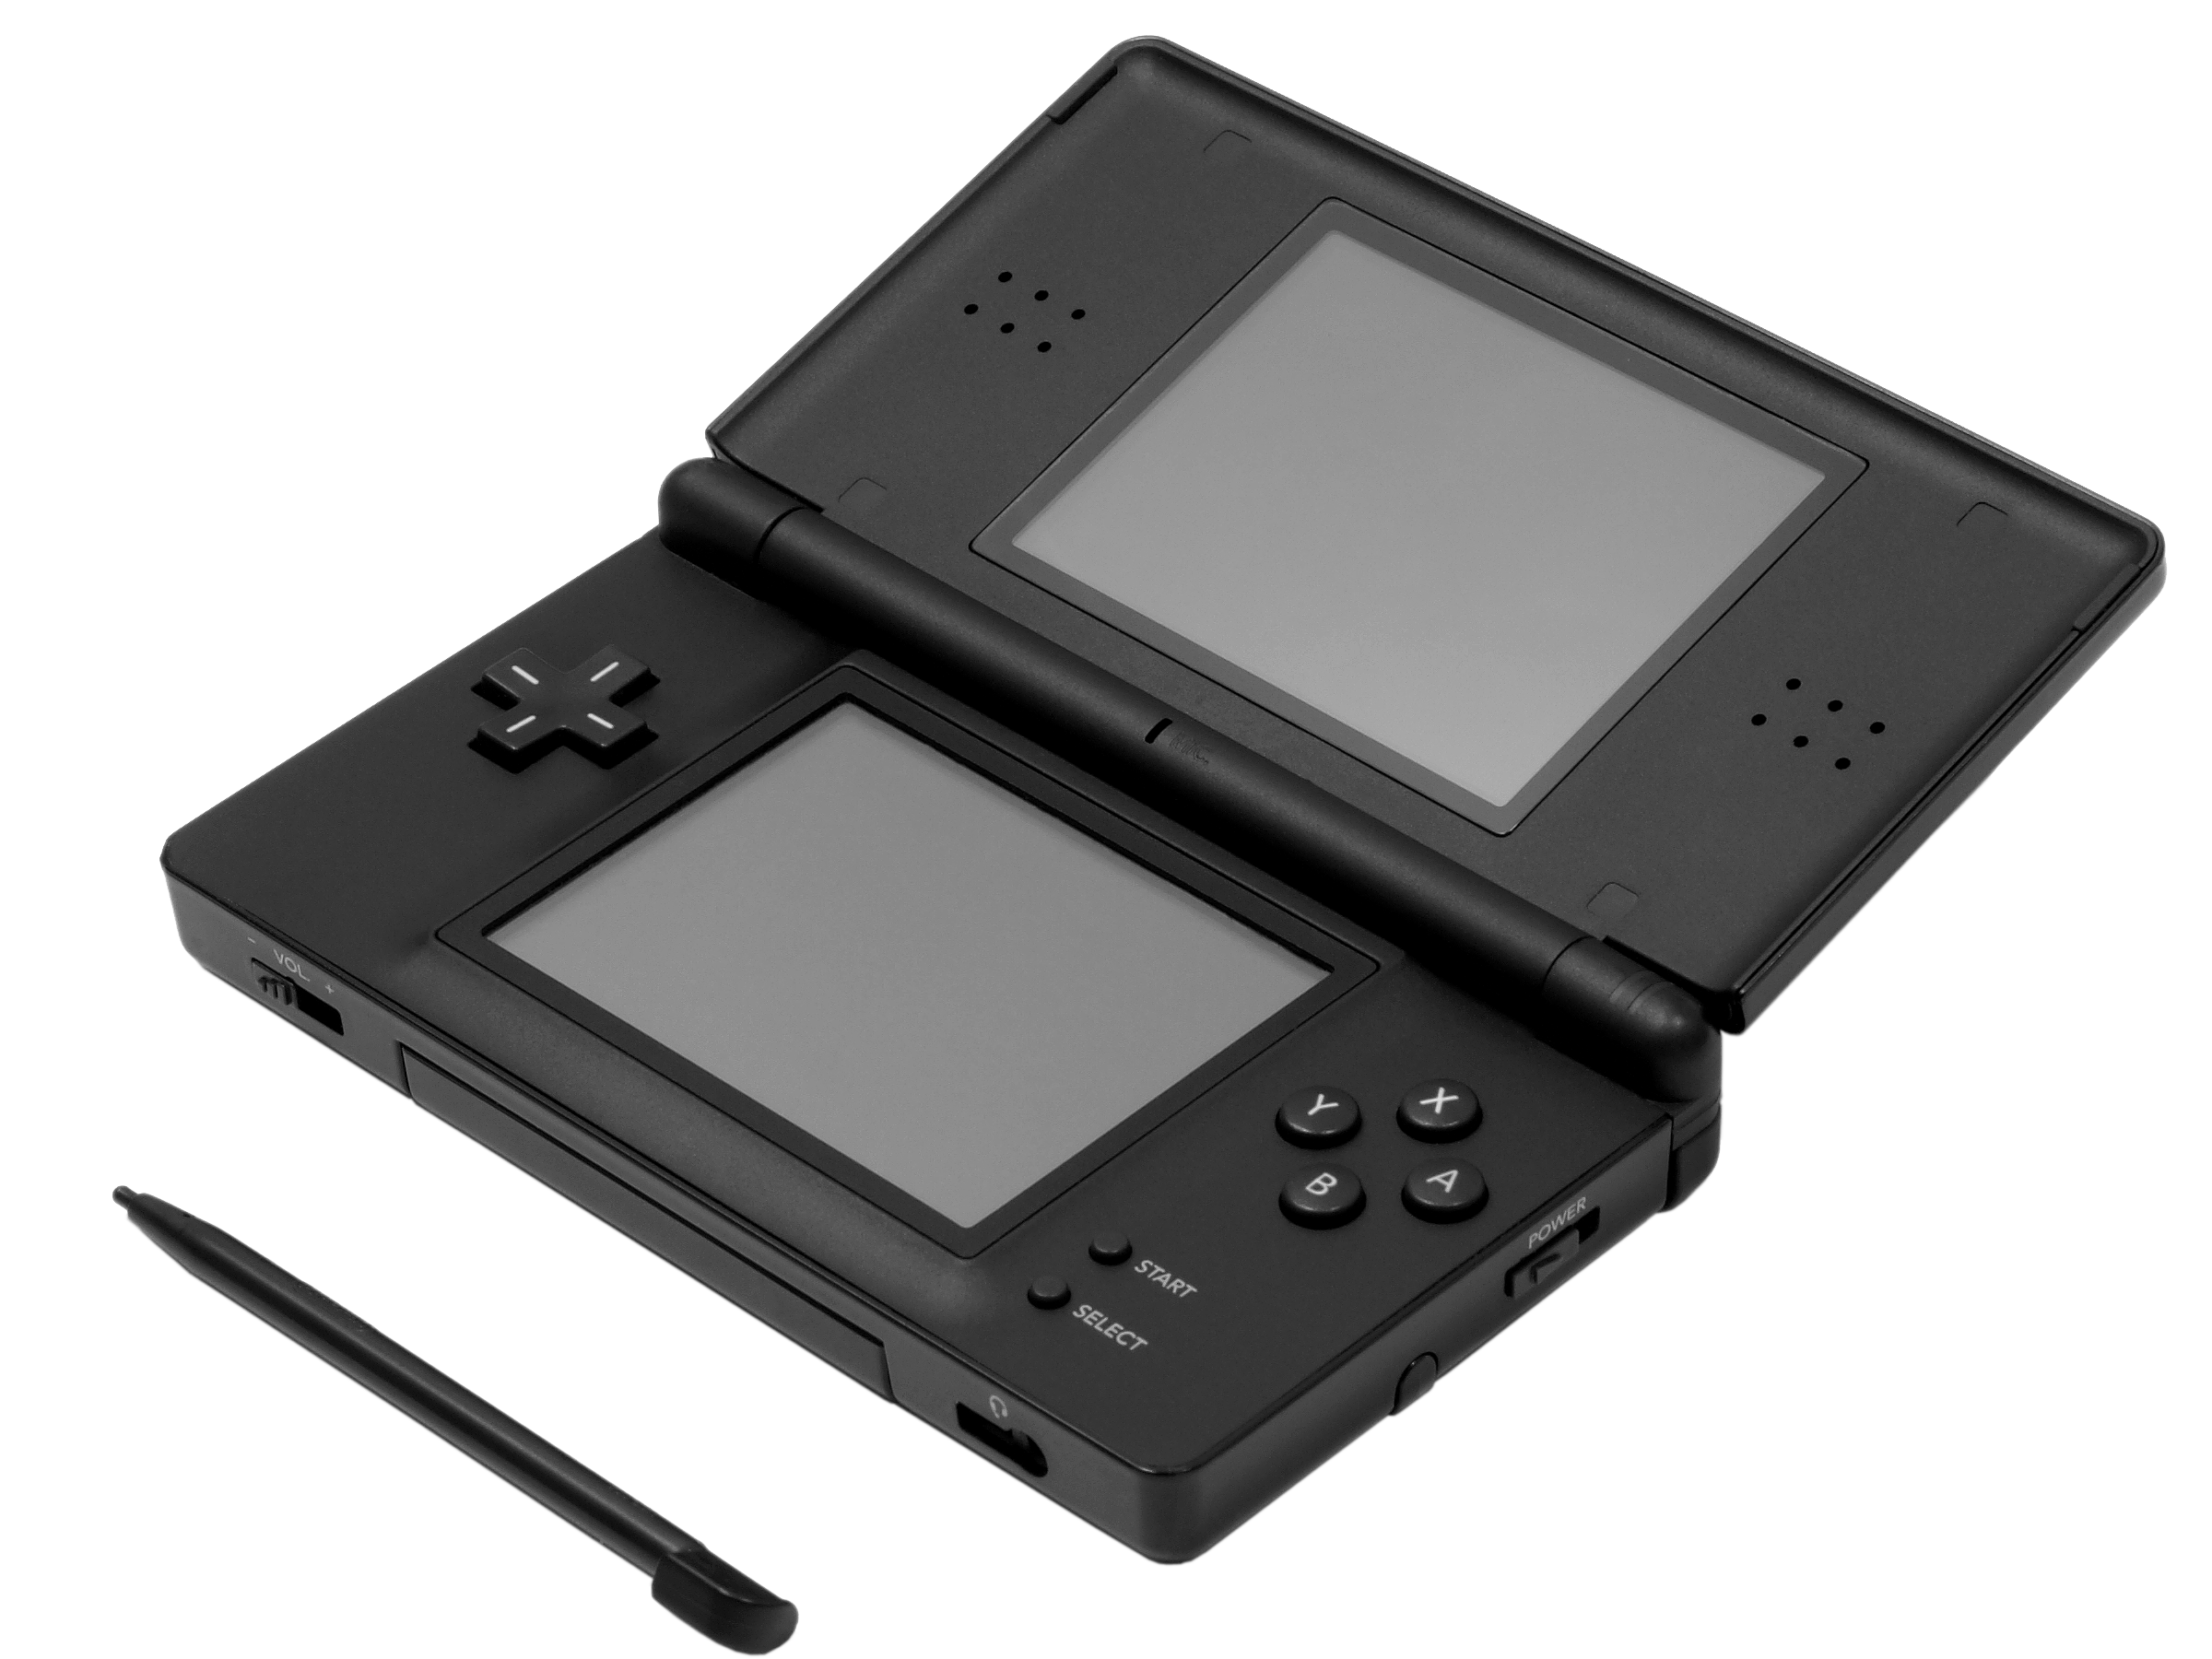 file nintendo ds lite w wikimedia commons. Black Bedroom Furniture Sets. Home Design Ideas